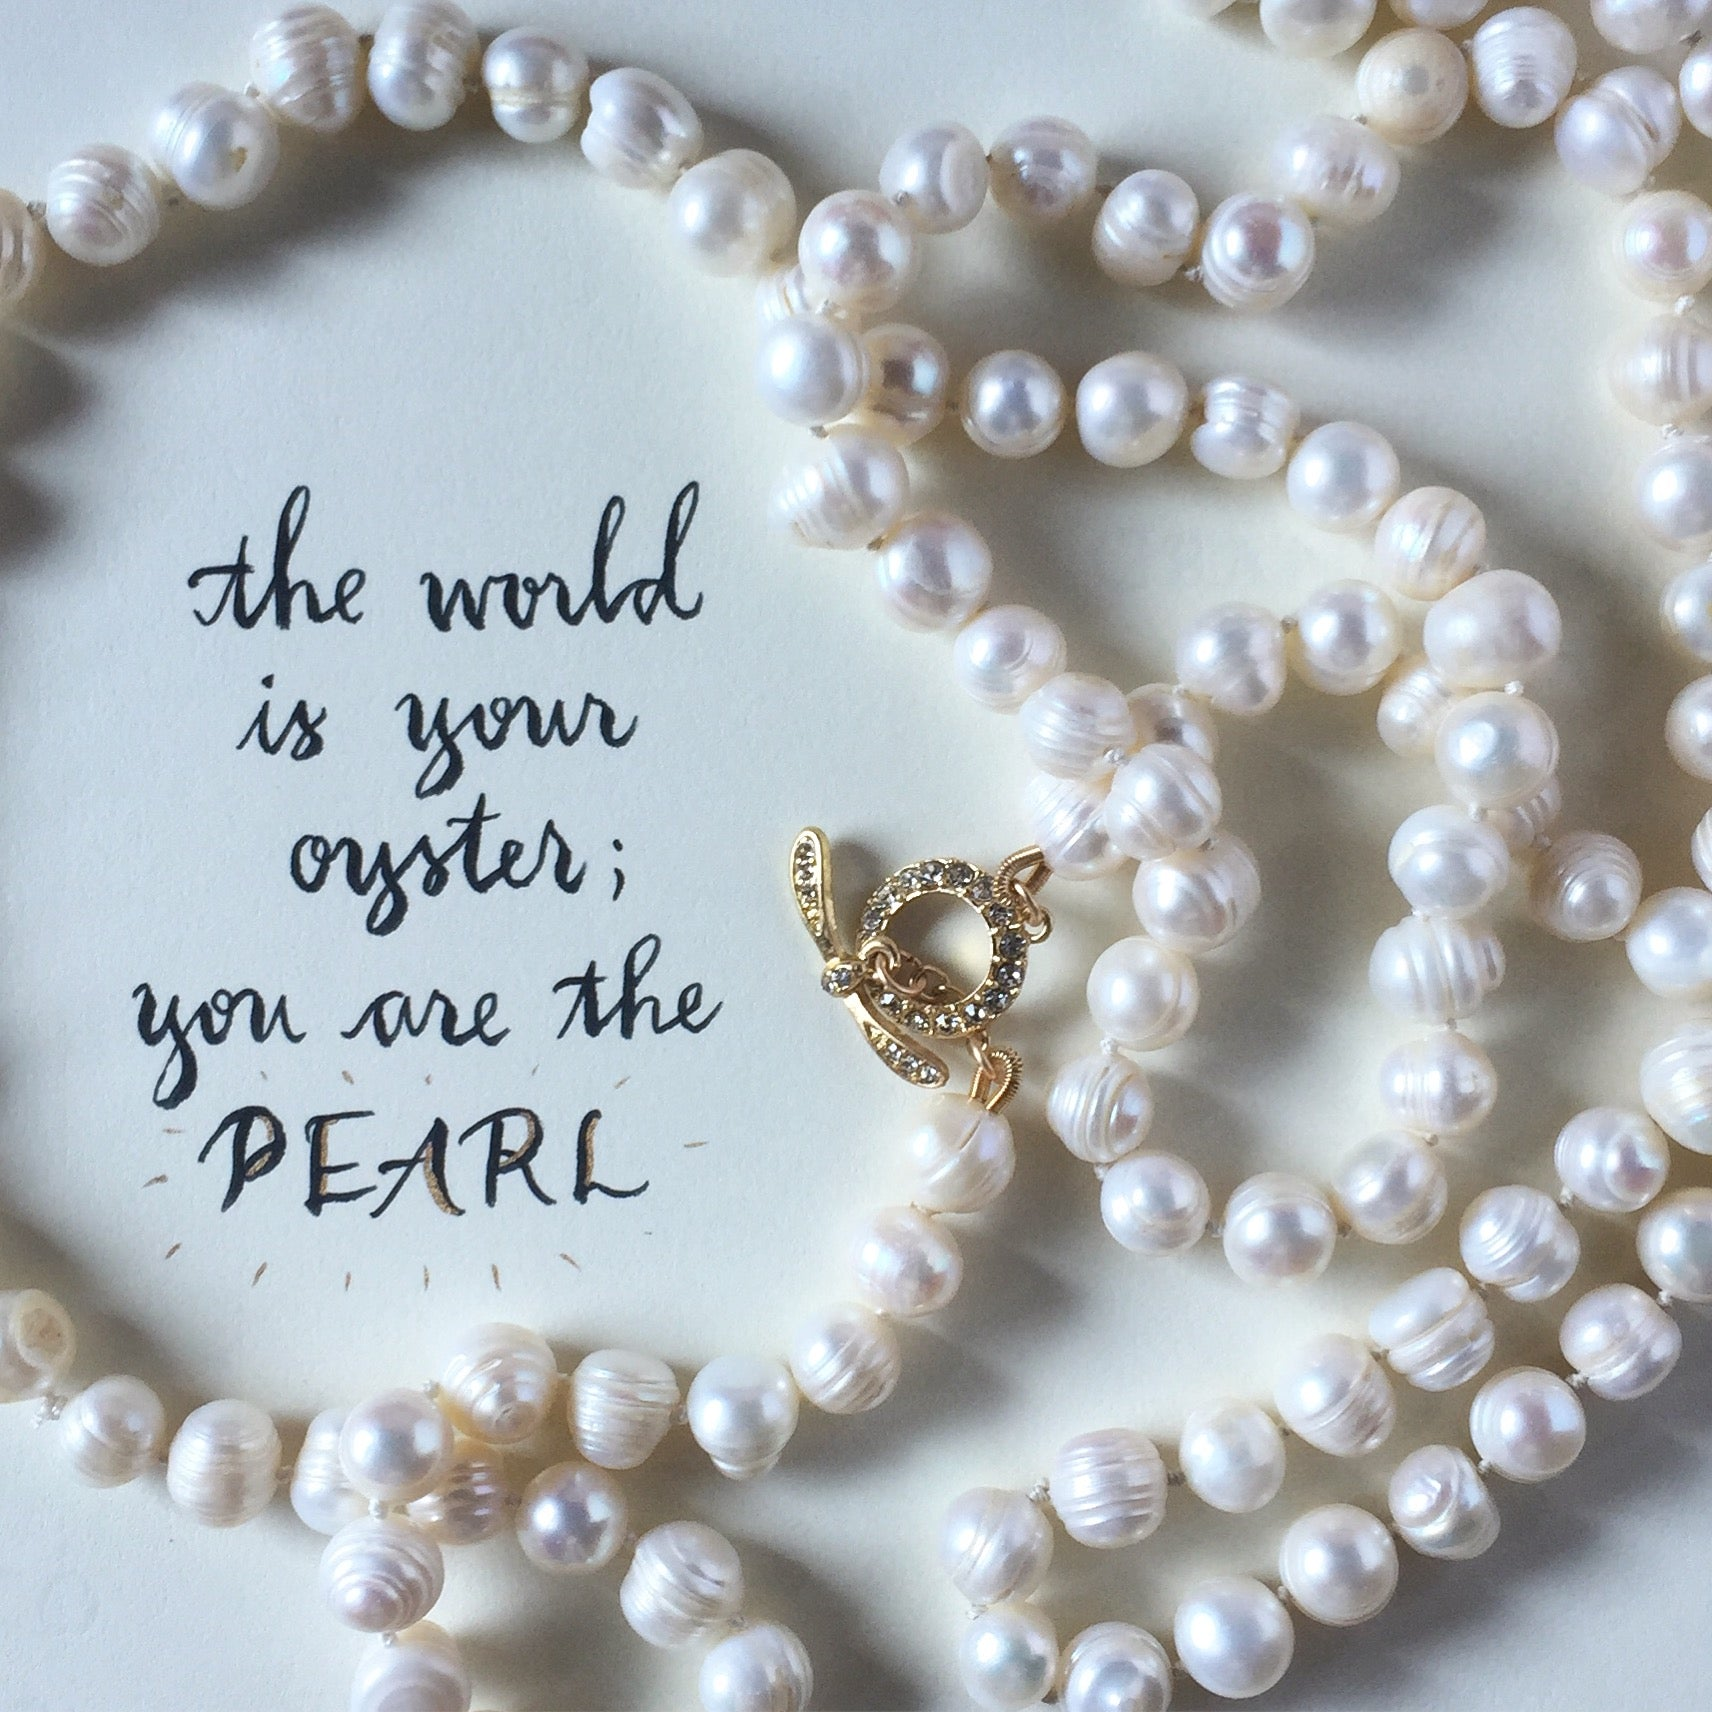 #SequinSayings - You are the Pearl